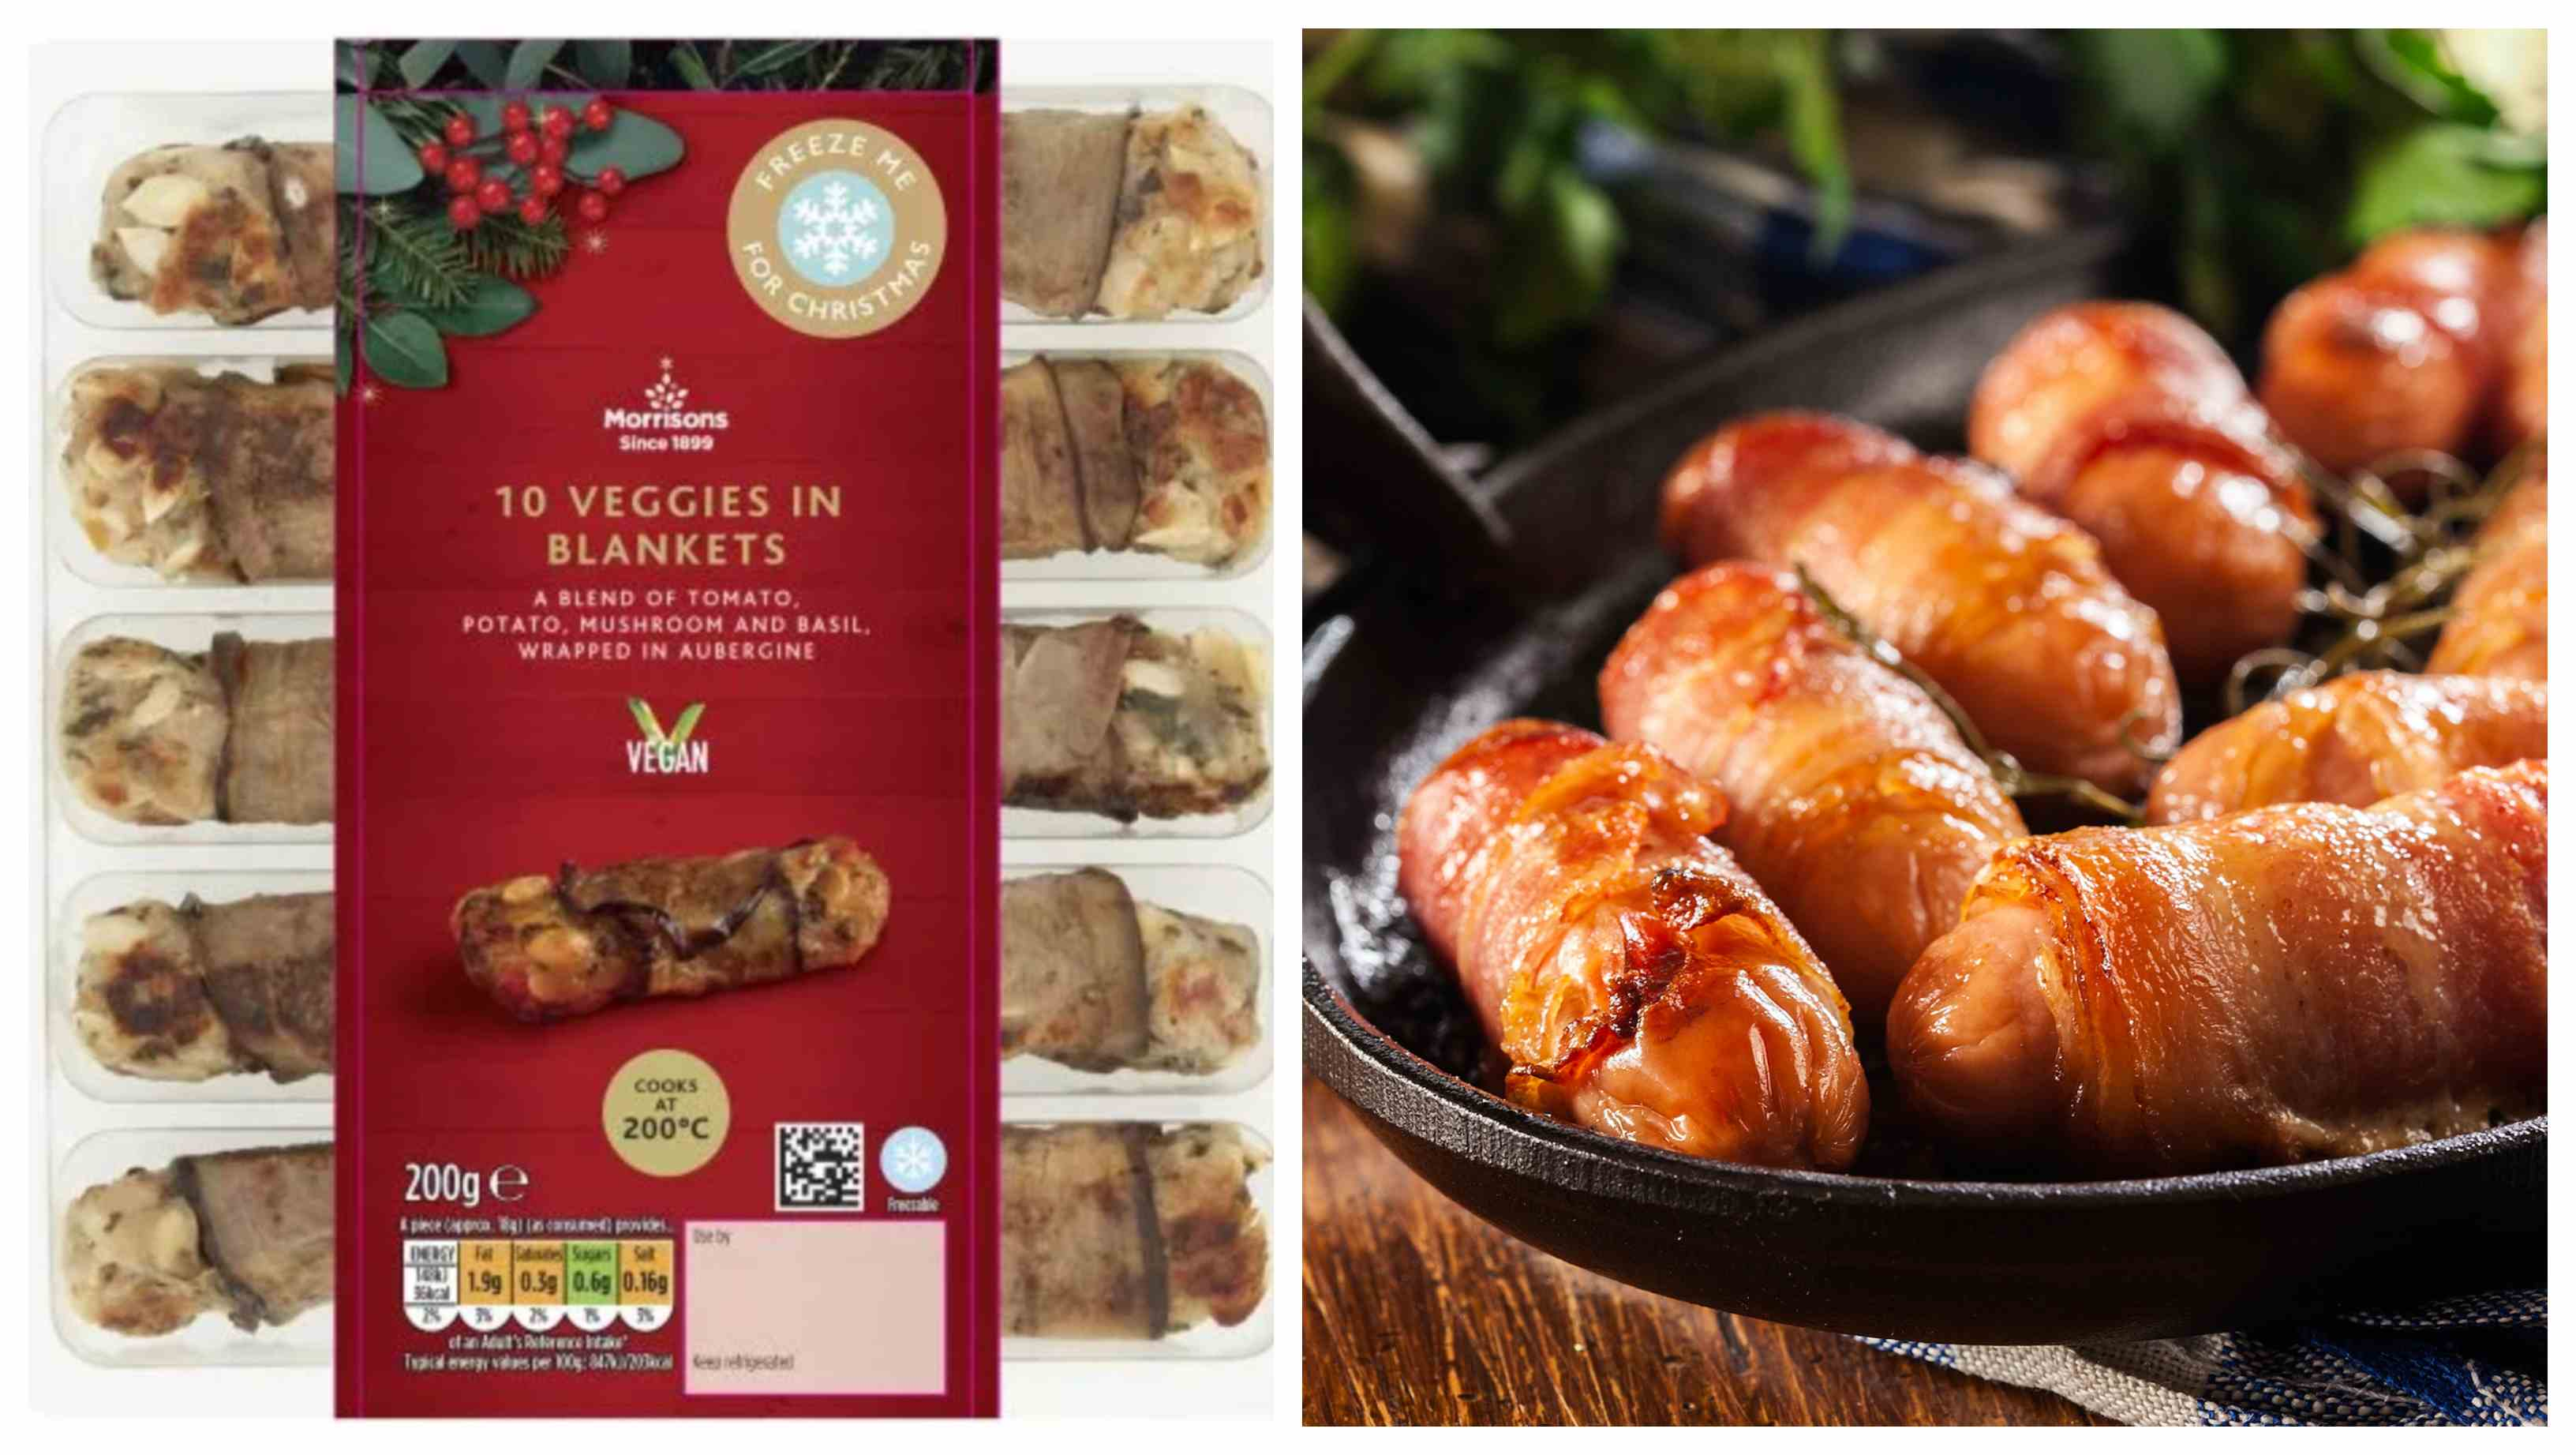 Vegan pigs in blankets from Morrisons